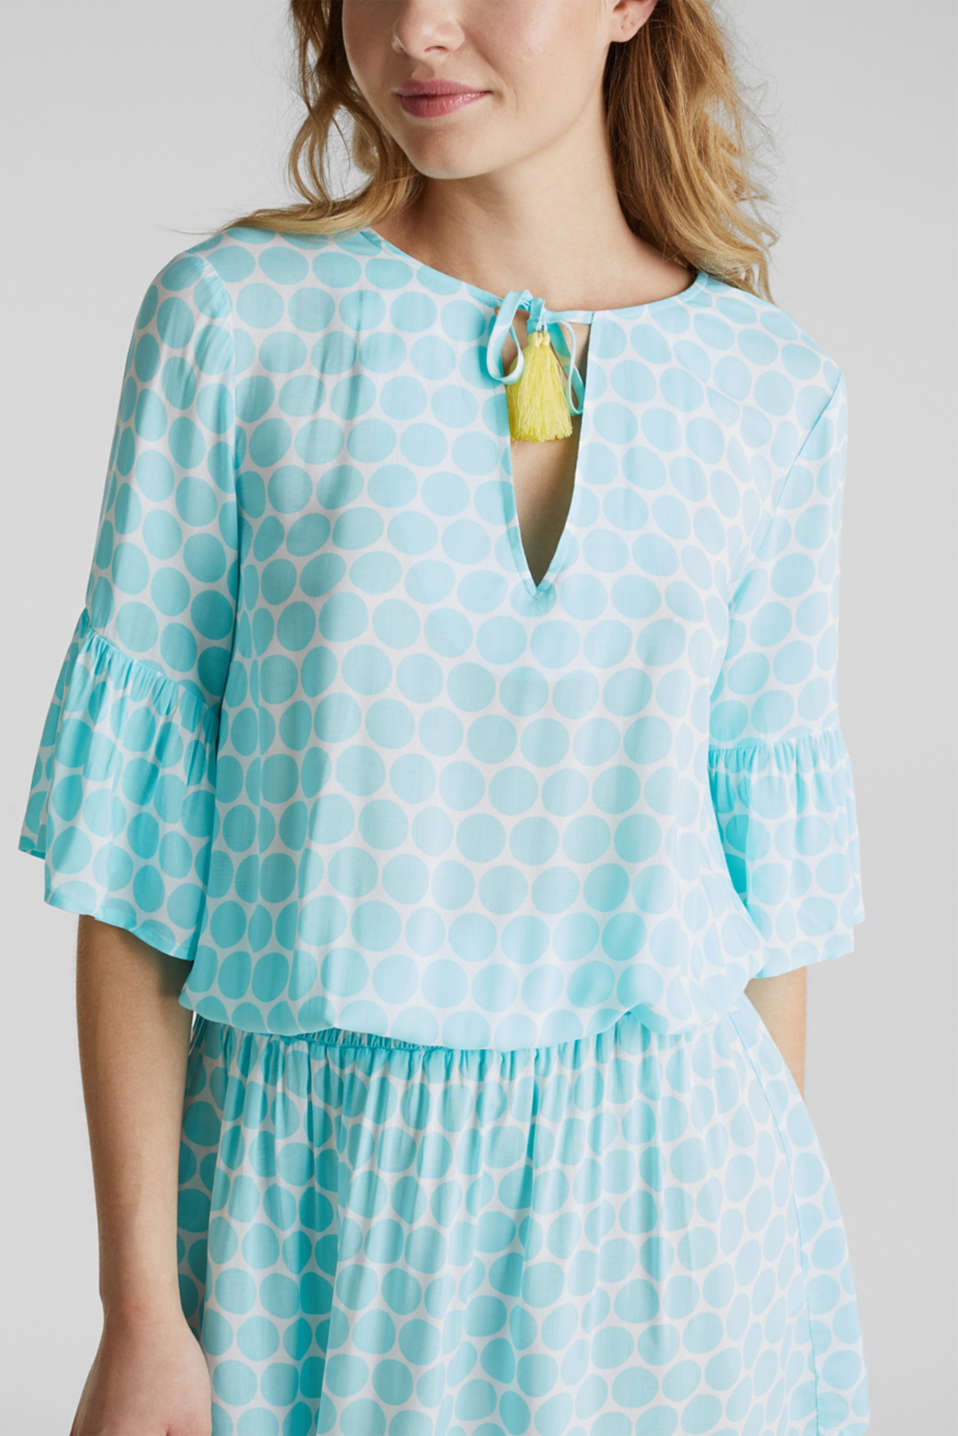 Tunic dress with a polka dot print, LIGHT AQUA GREEN, detail image number 4